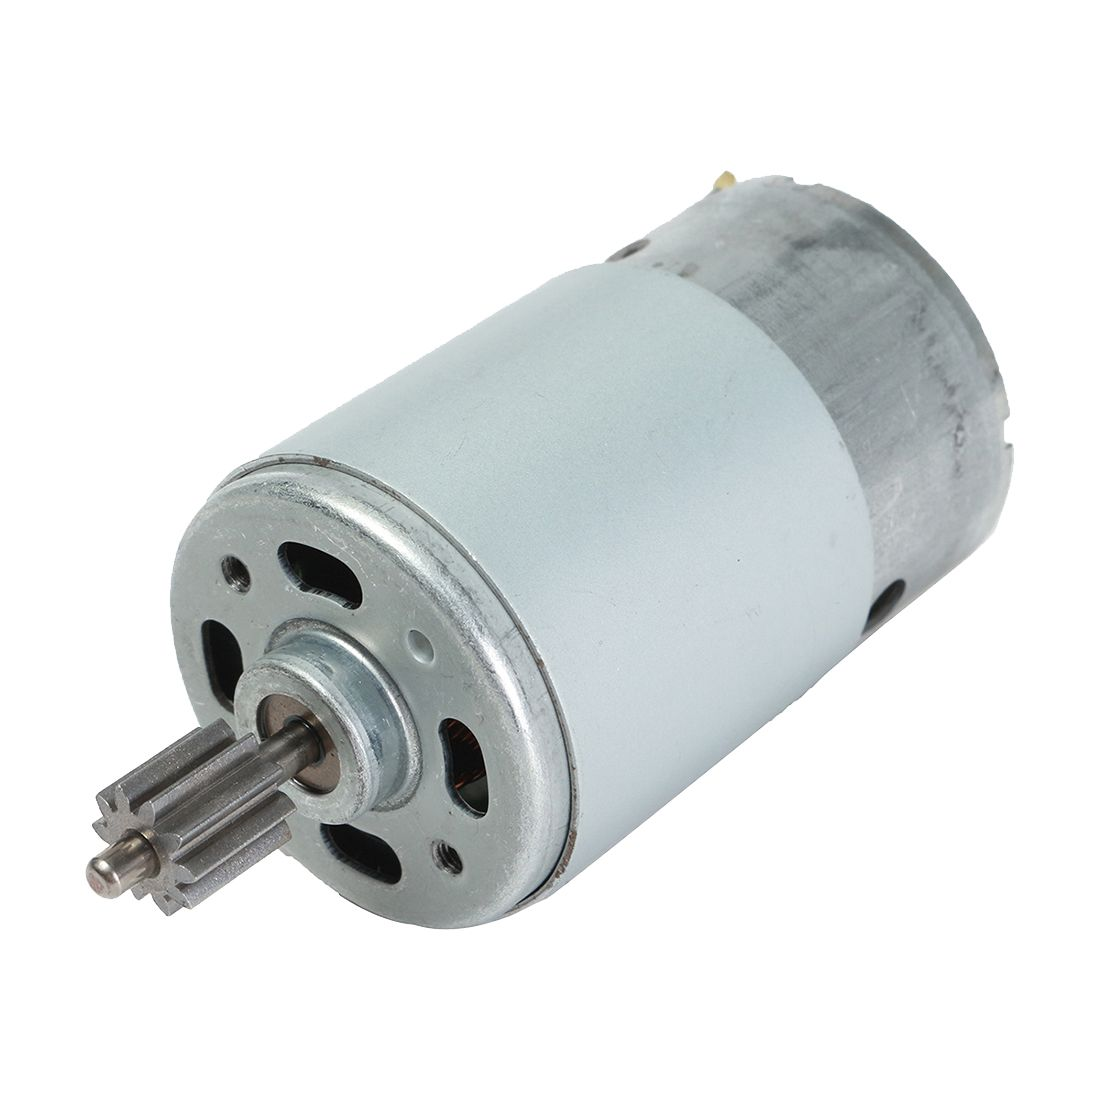 12V 15000 RPM Electric Motor Gear For Kids Ride On Car Bike Toy Spare Parts New12V 15000 RPM Electric Motor Gear For Kids Ride On Car Bike Toy Spare Parts New